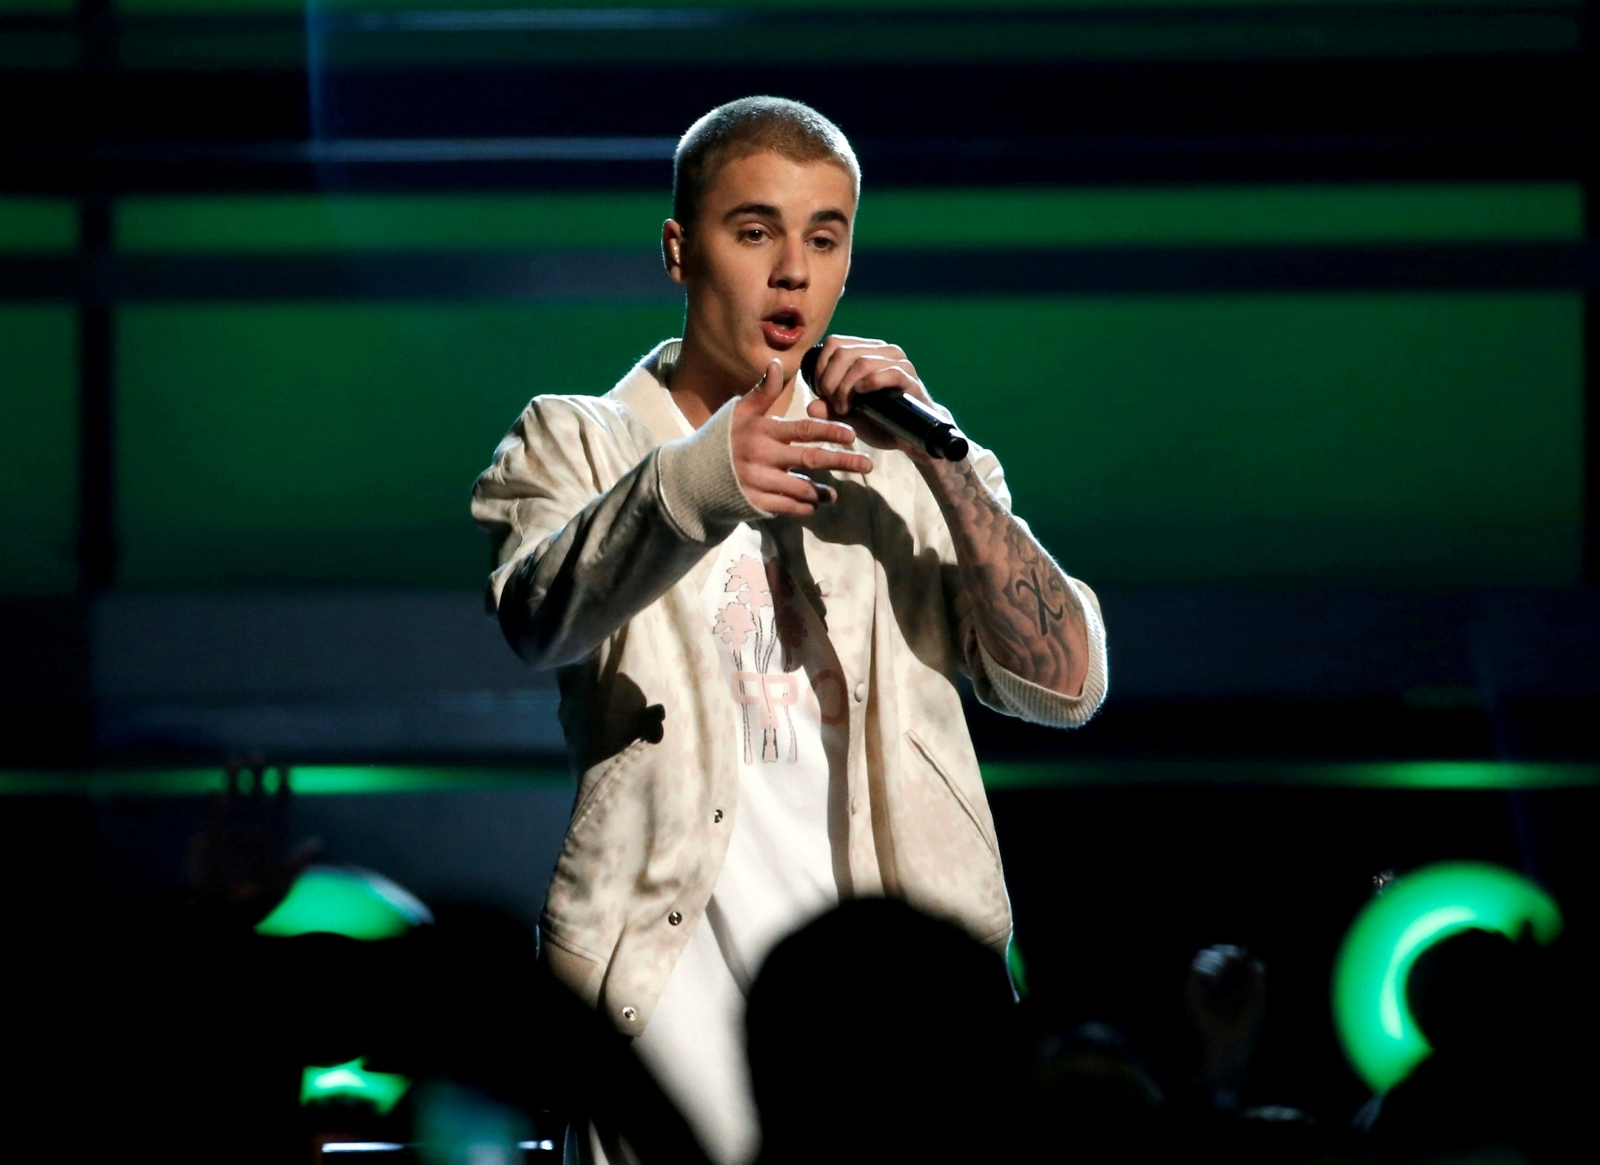 Justin Beiber gives emotional performance at Sunday church service with Kanye West